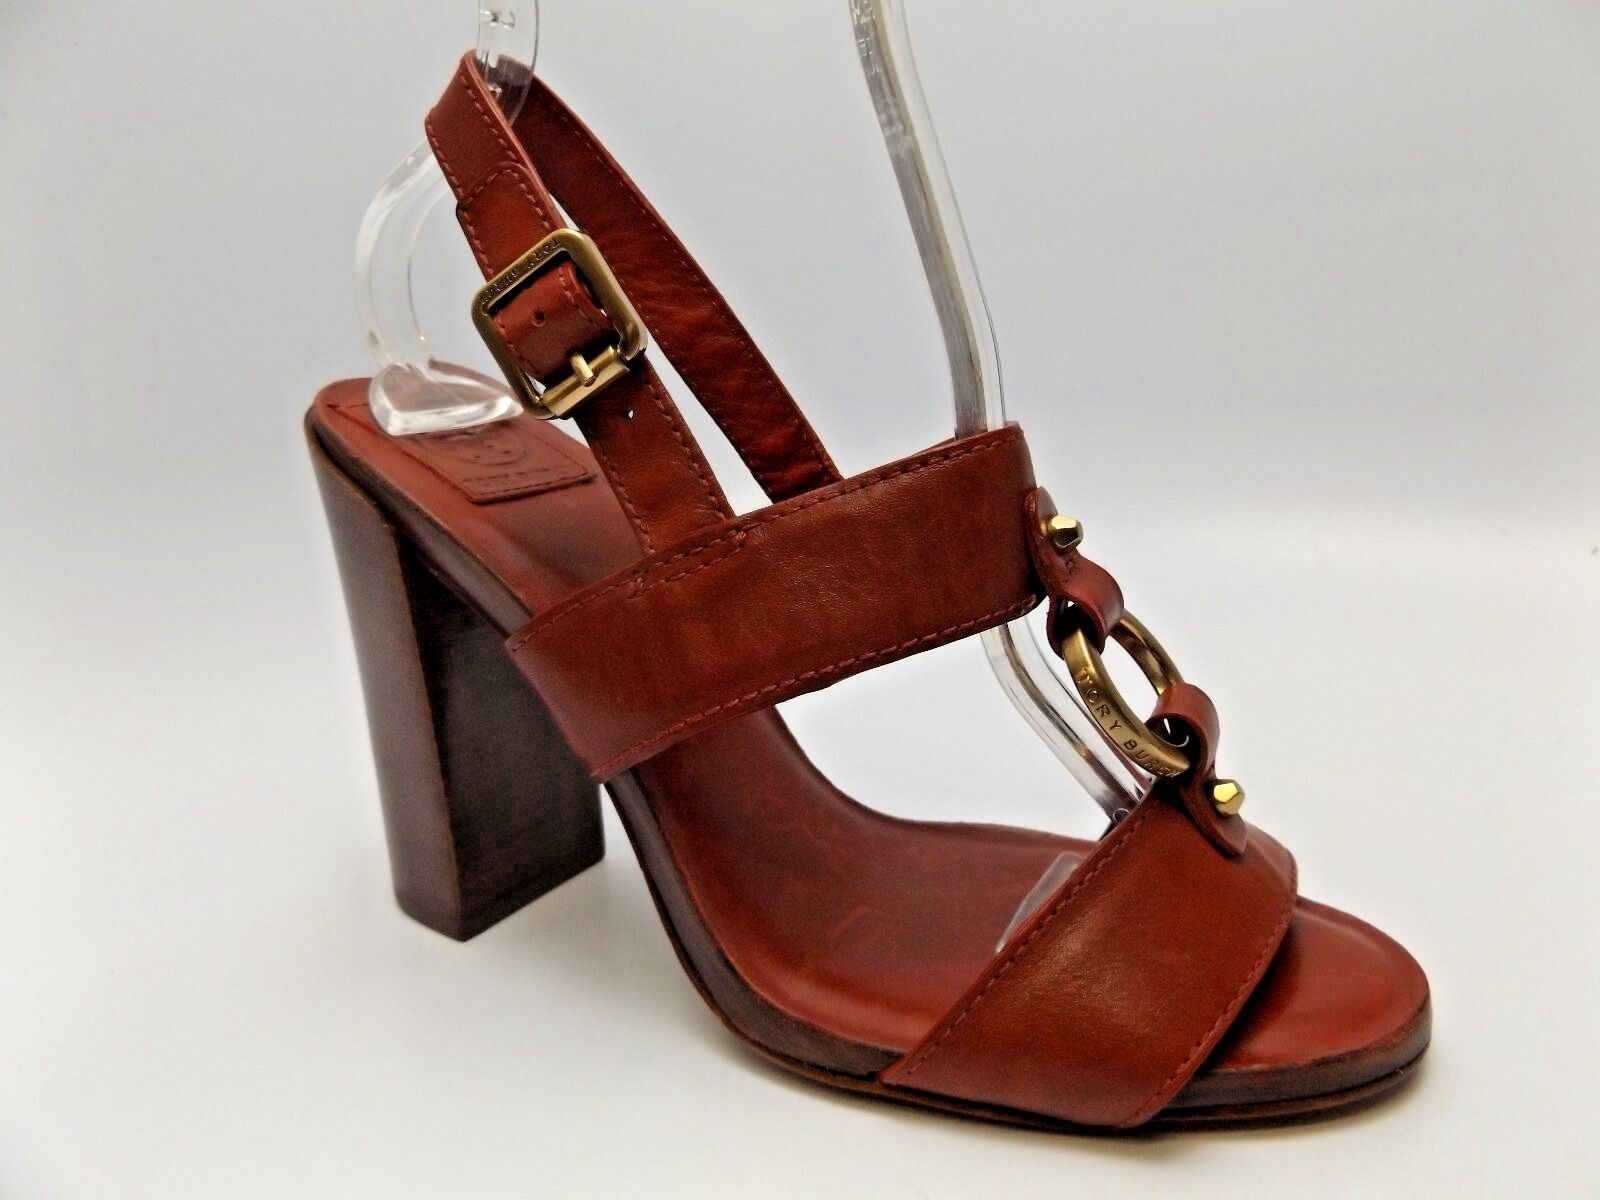 Donna TORY slingback BURCH FLETCHER red leather slingback TORY sandals heels SZ 9.0 M NEW 2858 db7e7f